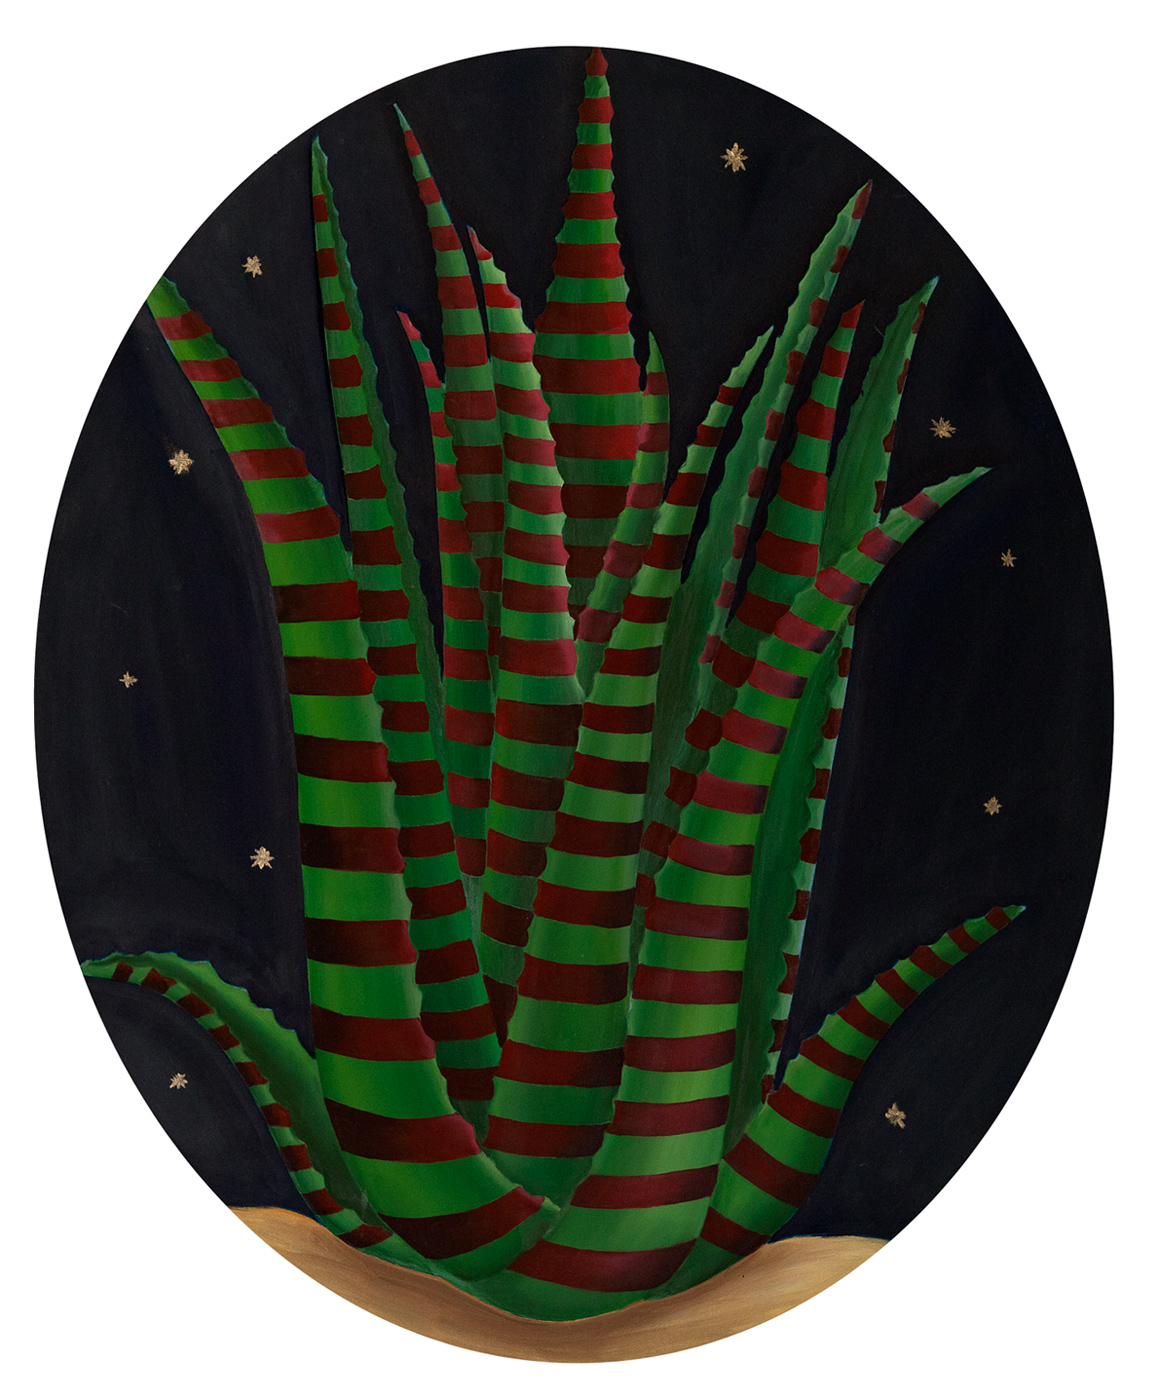 Aloe Vera, Oil on canvas, <br/> 50 x 60 cm, 2011